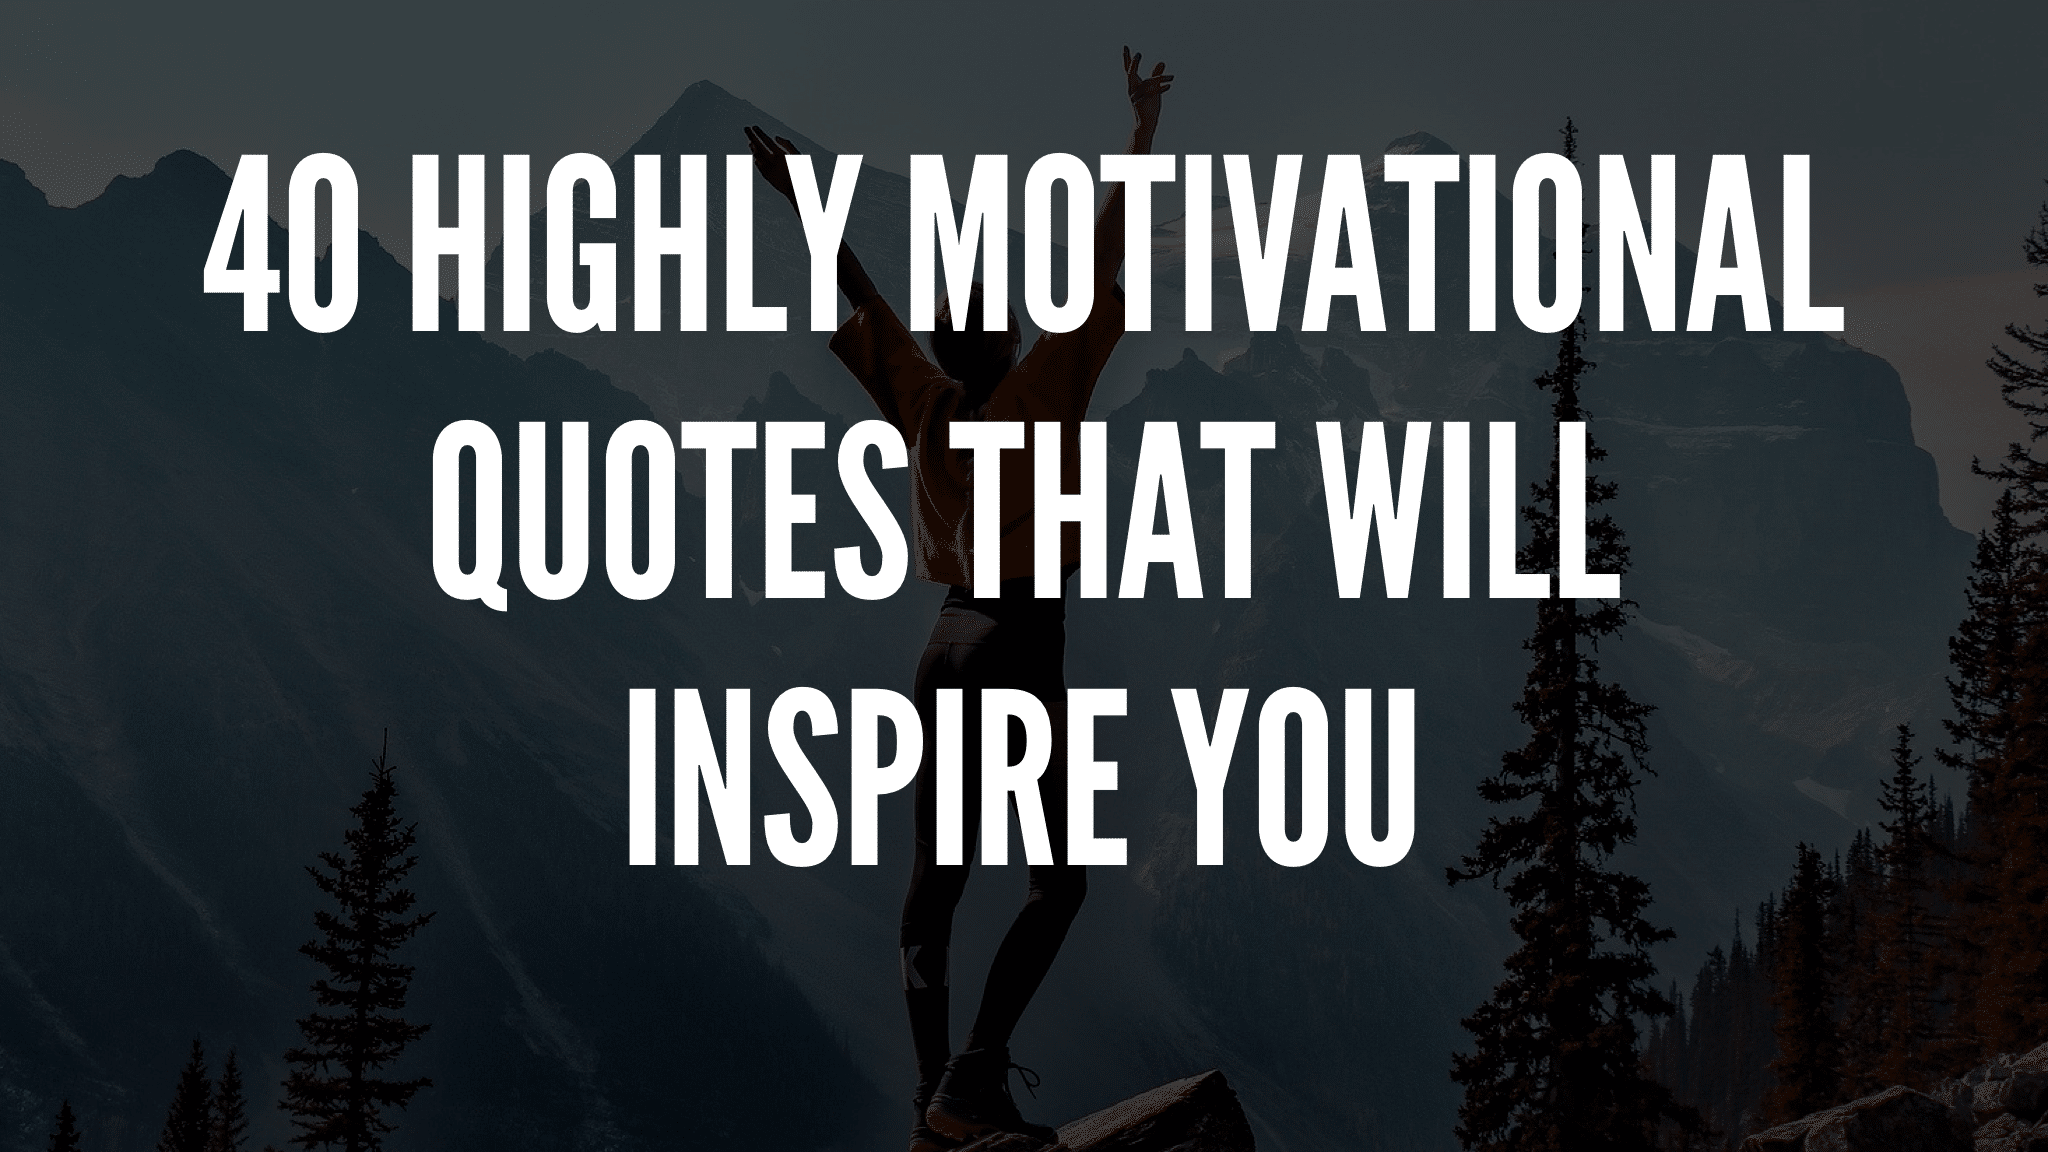 40 Highly Motivational Quotes That Will Inspire You